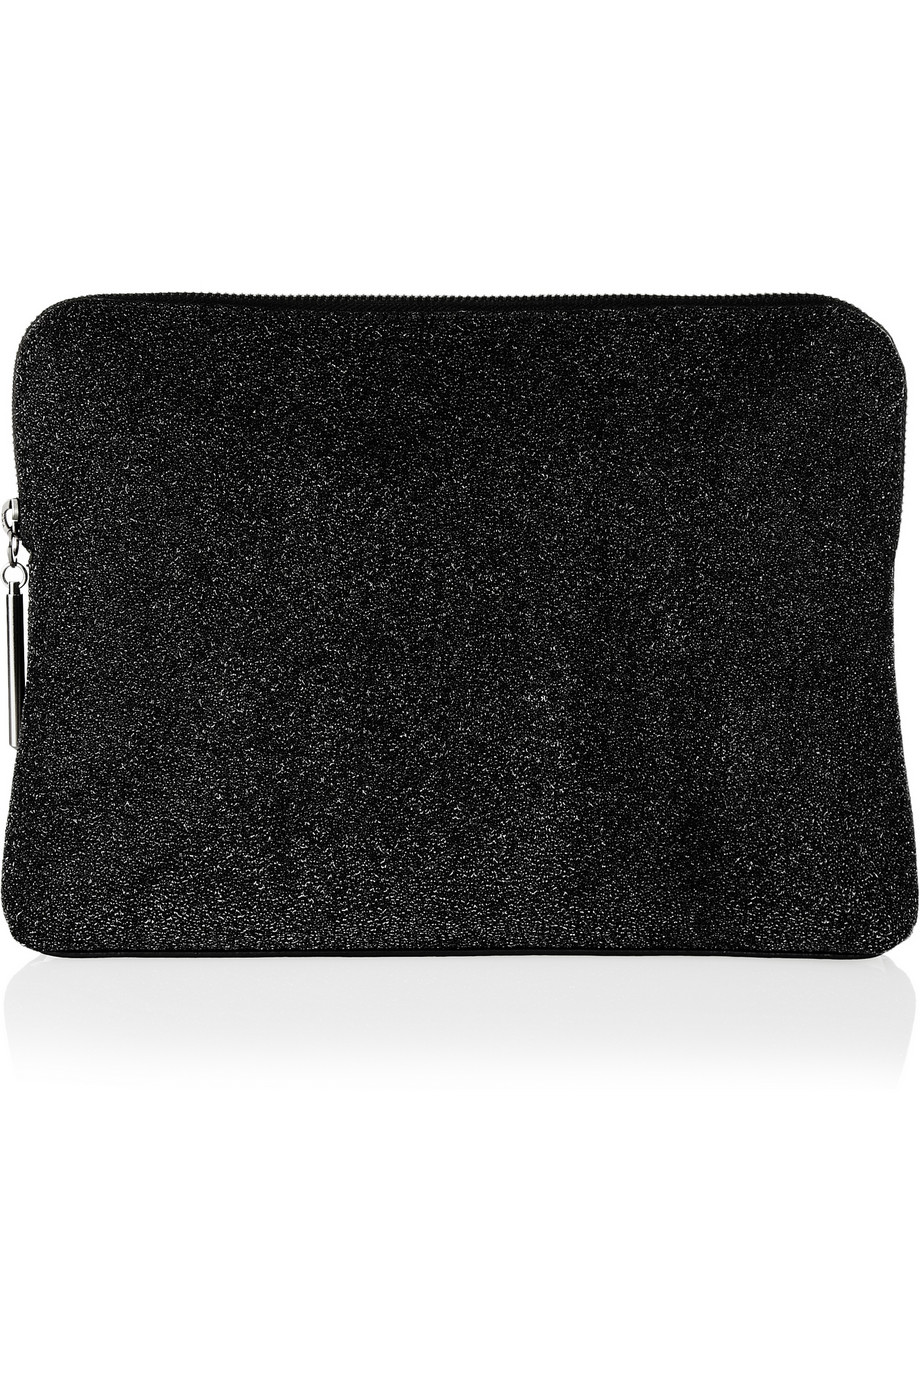 3.1 PHILLIP LIM 31 Minute Textured-Leather Clutch buy HERE